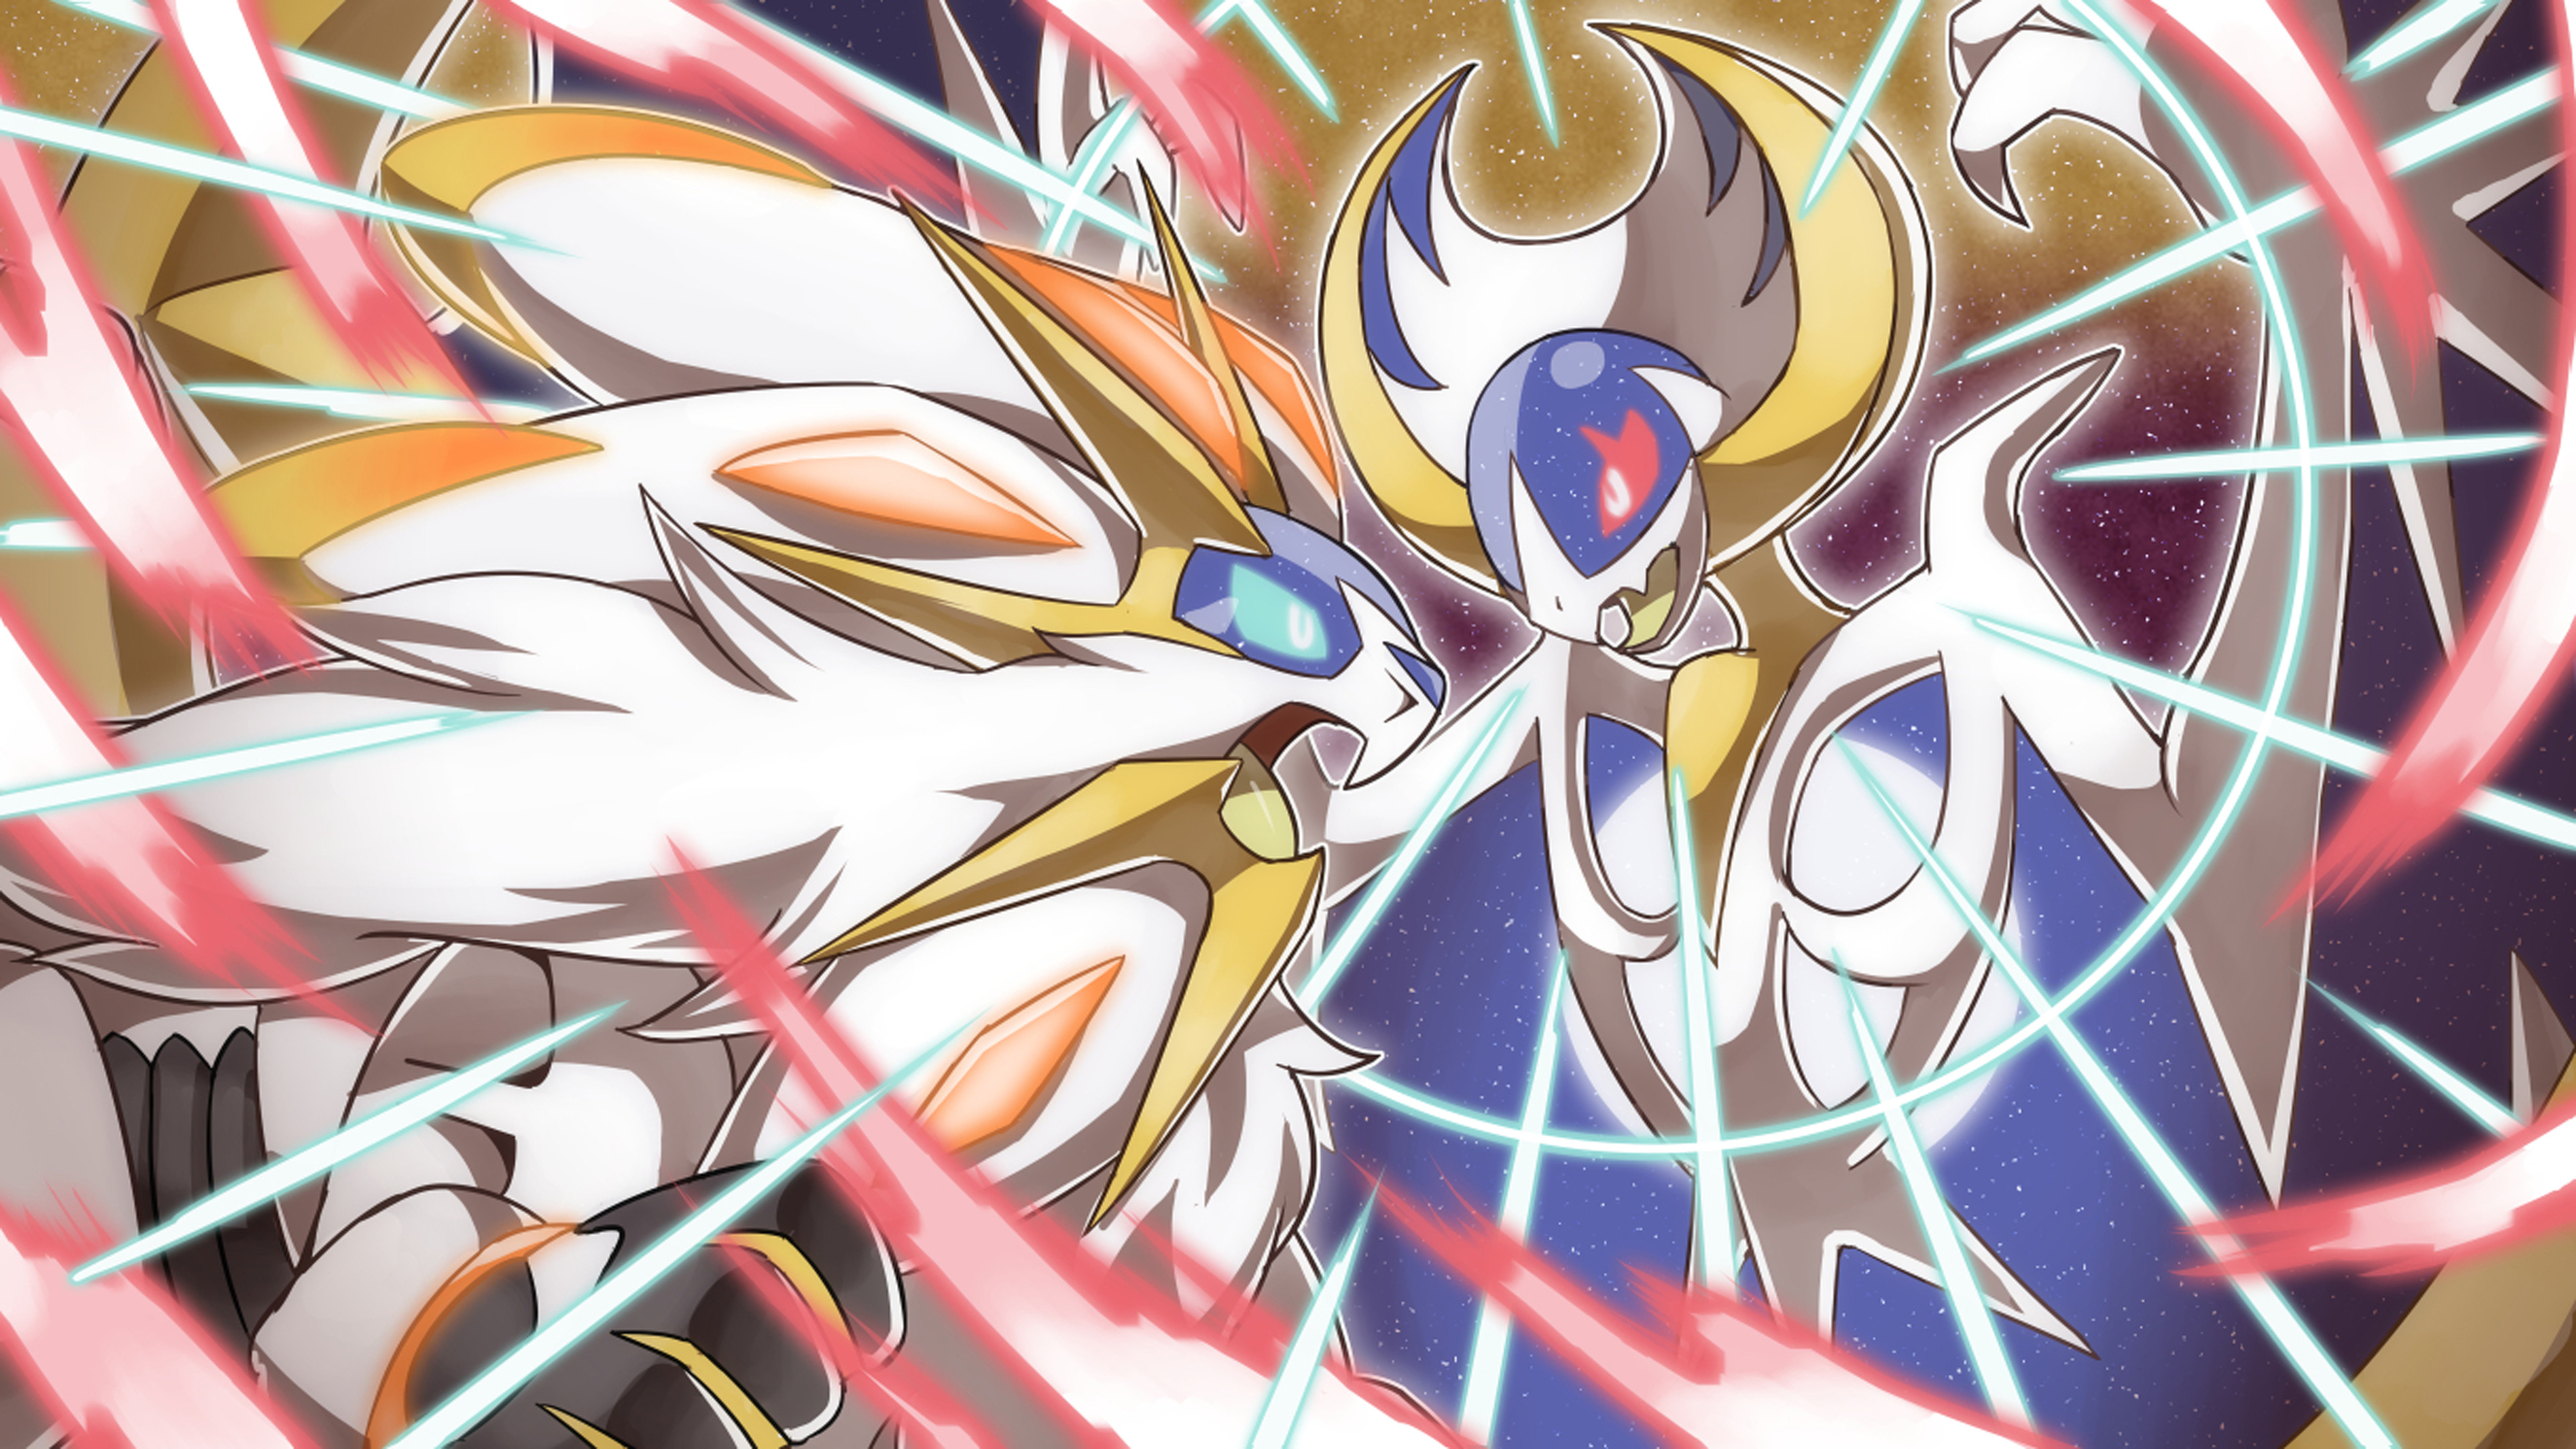 3840x2160 Video Game - Pokémon Sun and Moon Solgaleo (Pokémon) Pokémon Sun Lunala  (Pokémon